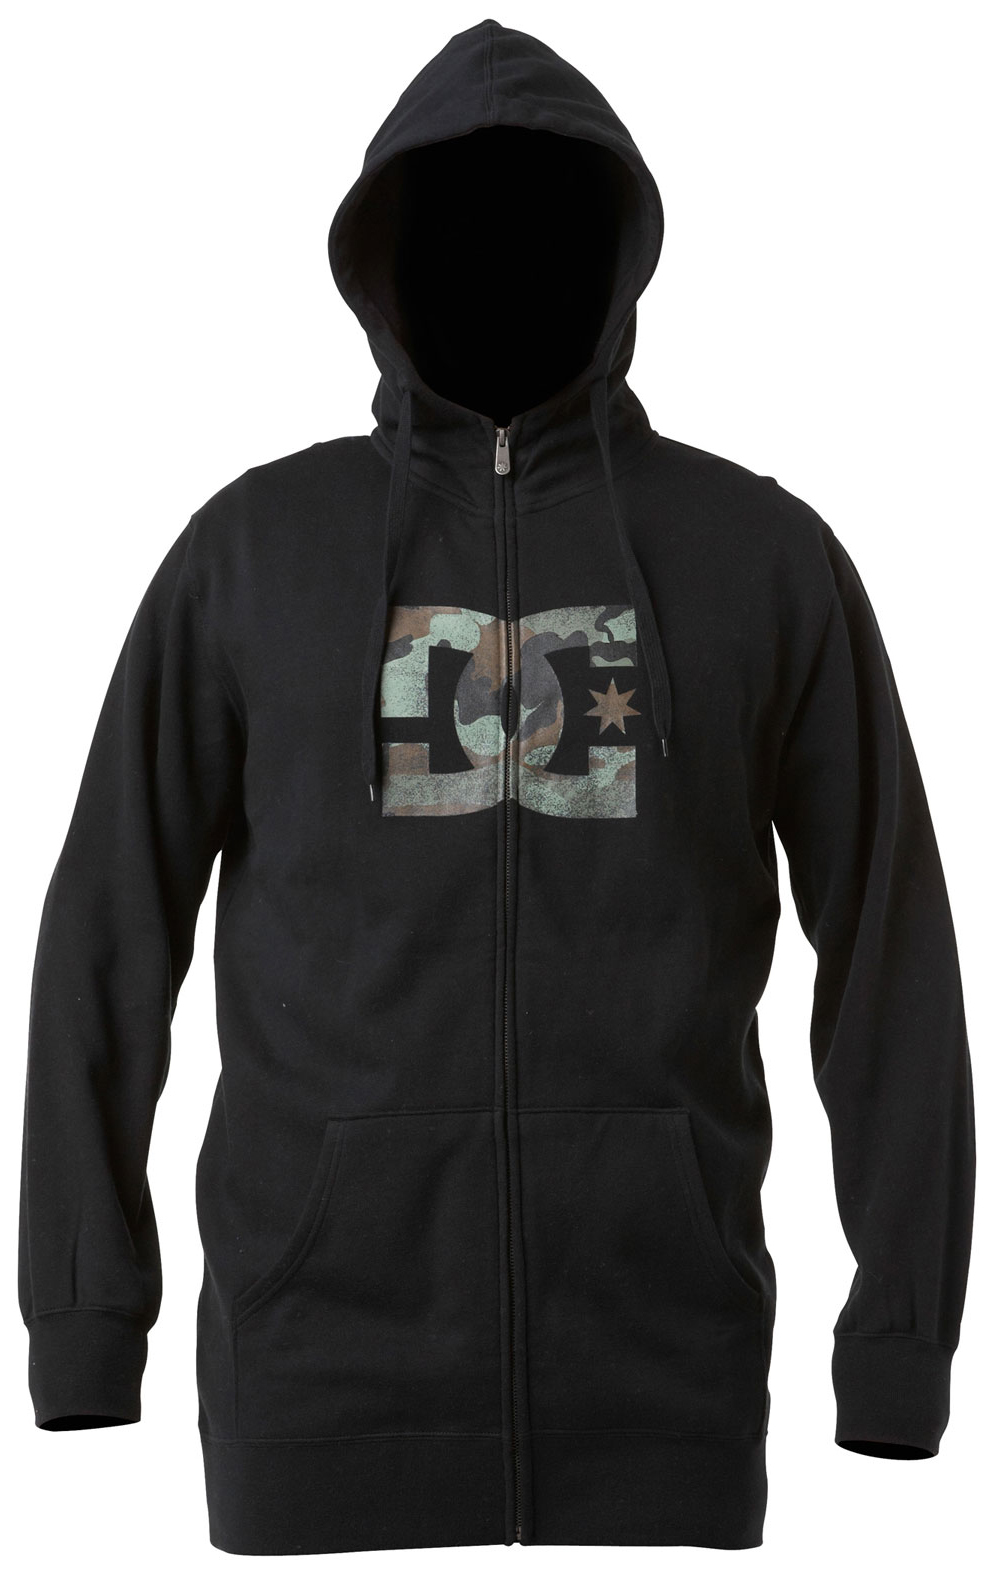 Skateboard Long fit full zip hoodie fleece with dc filled logo print on body.  Fit: long fzh   80% cotton / 20% polyester 280g fleece - $30.95